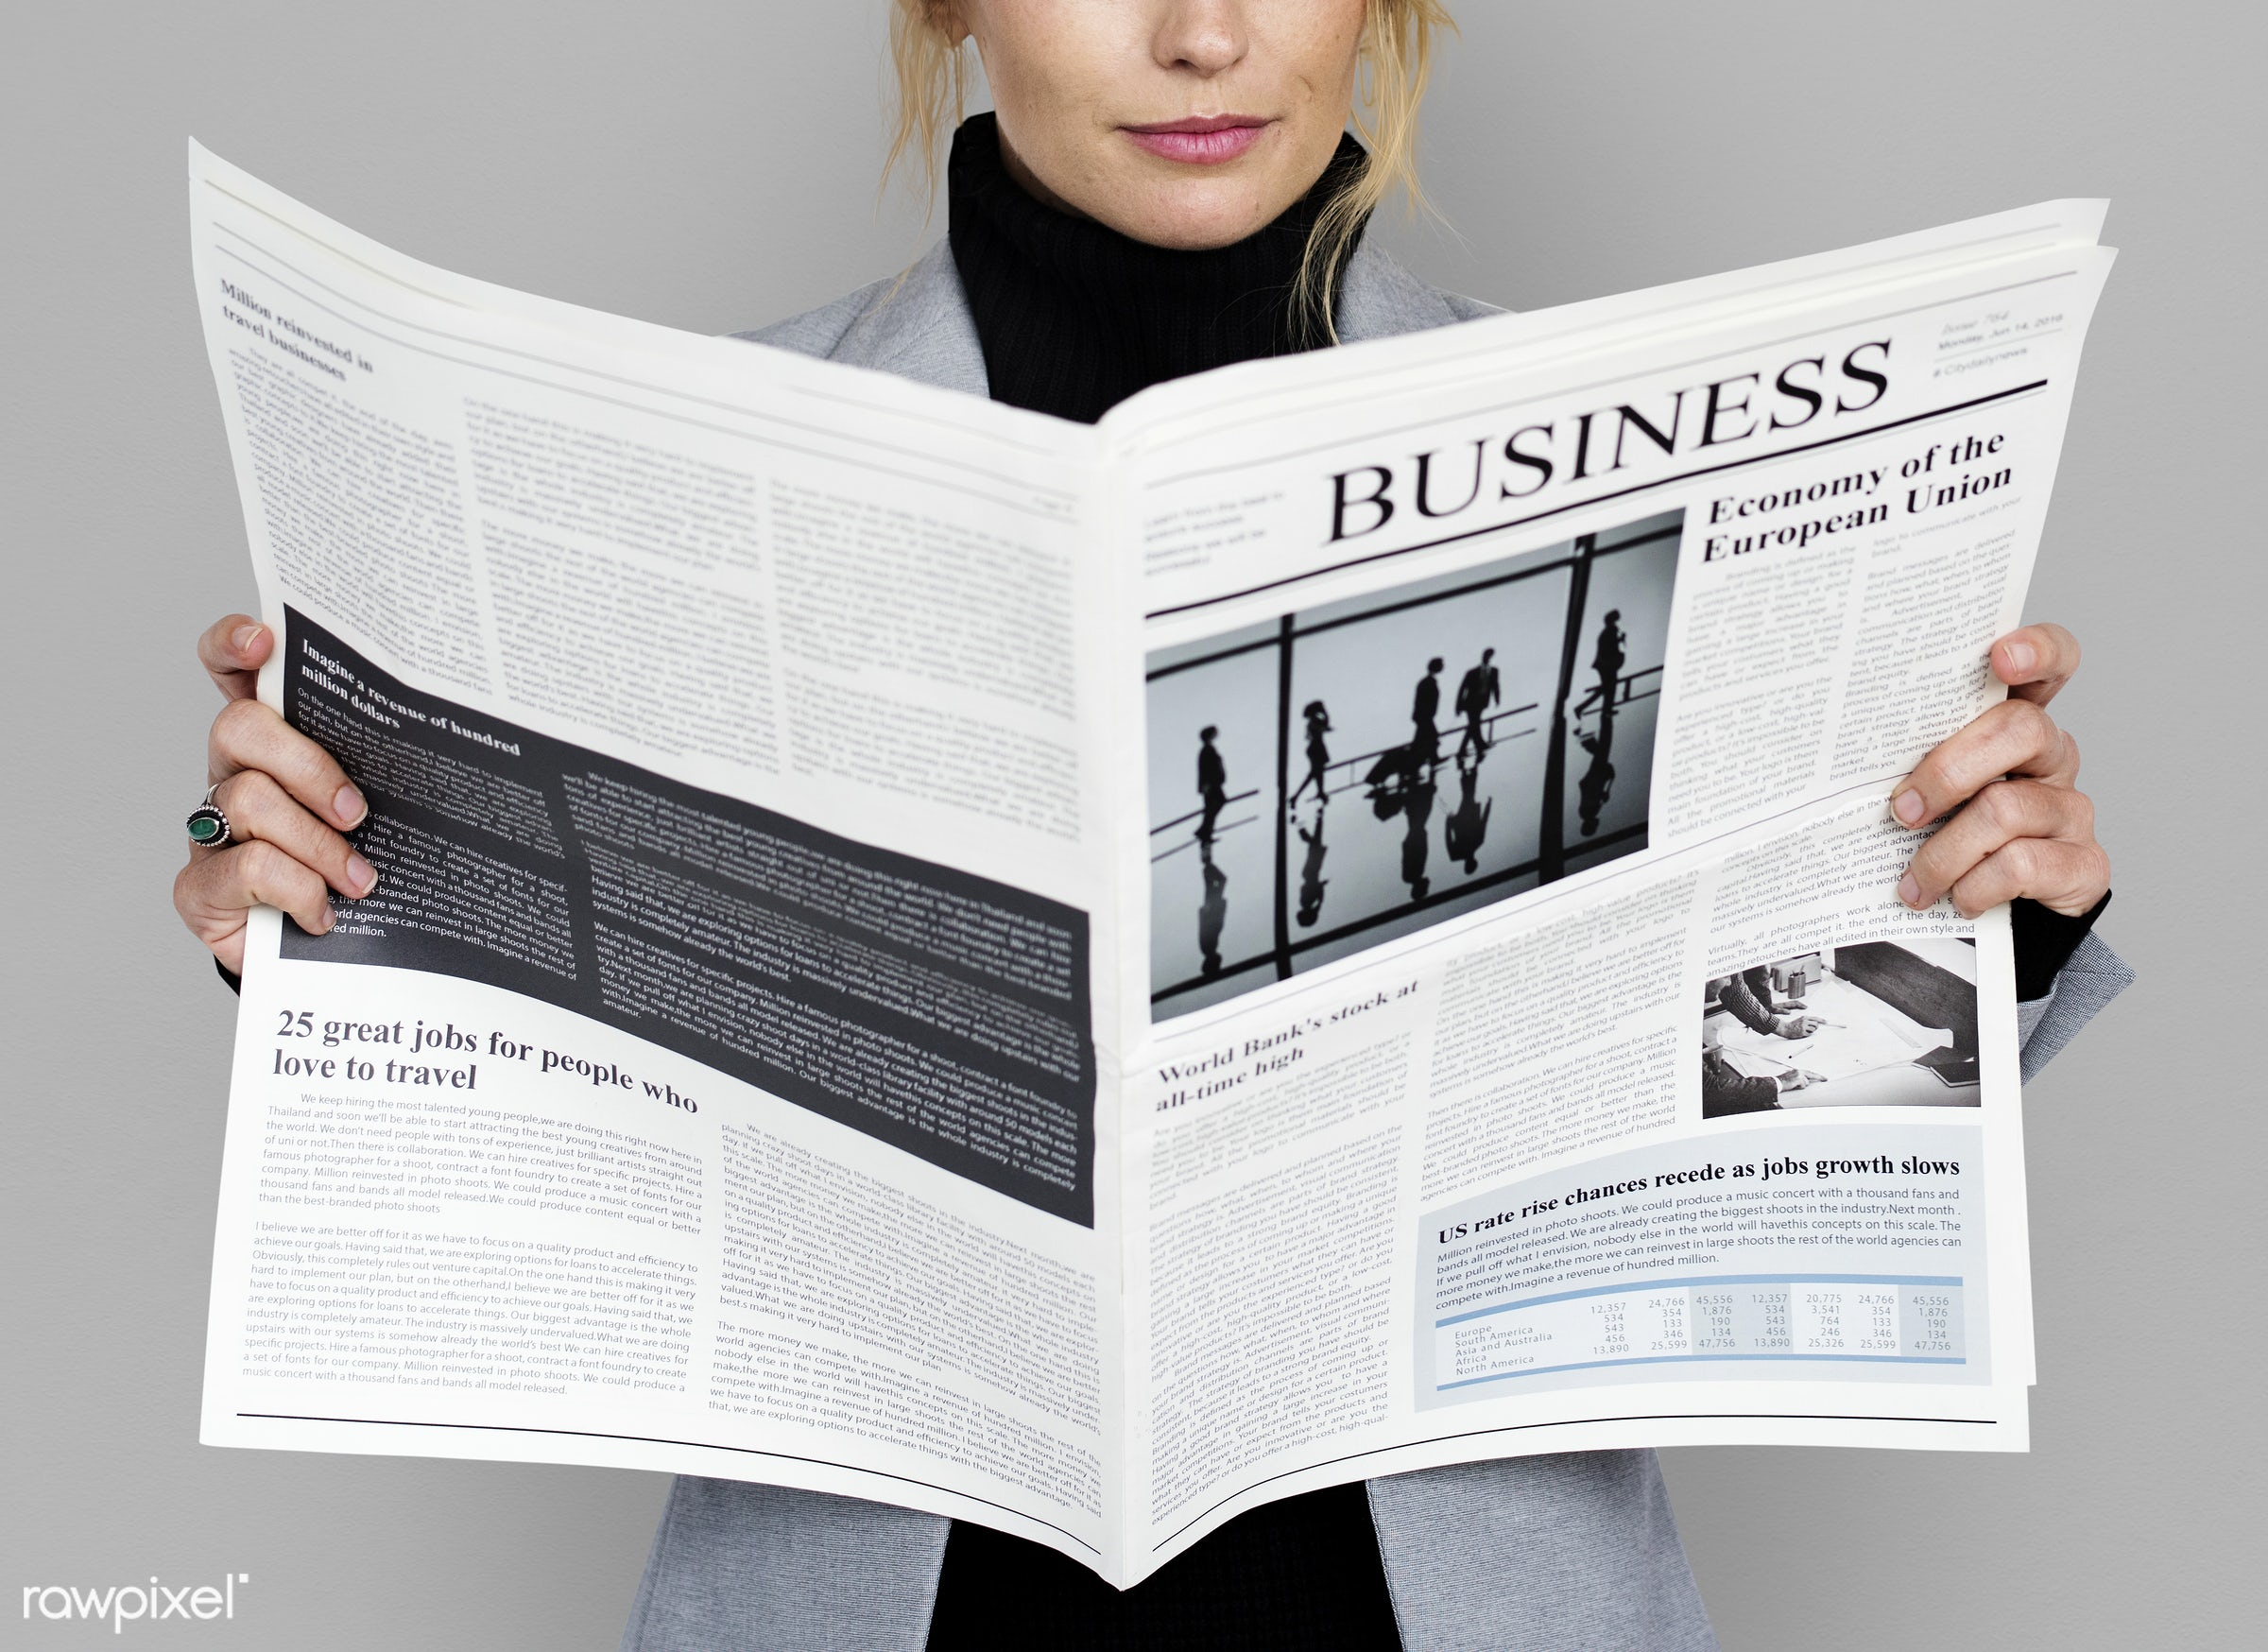 expression, studio, person, reading, business newspaper, business wear, business dressing, formal dressing, people, business...